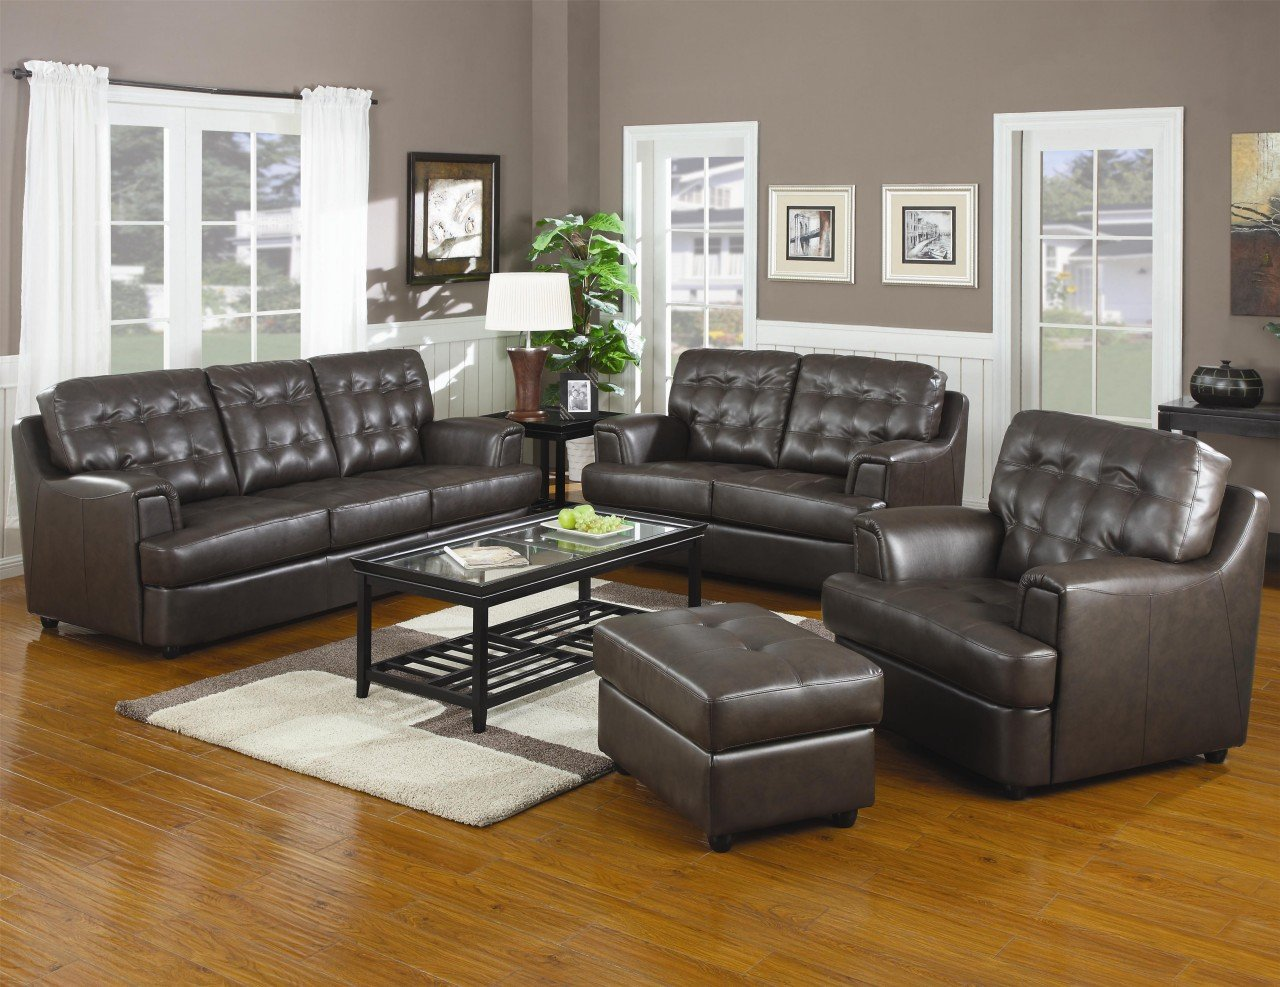 Inland Empire Furniture Michael Chocolate Bonded Leather Bonded Leather Sofa - Loveseat - Chair and Ottoman